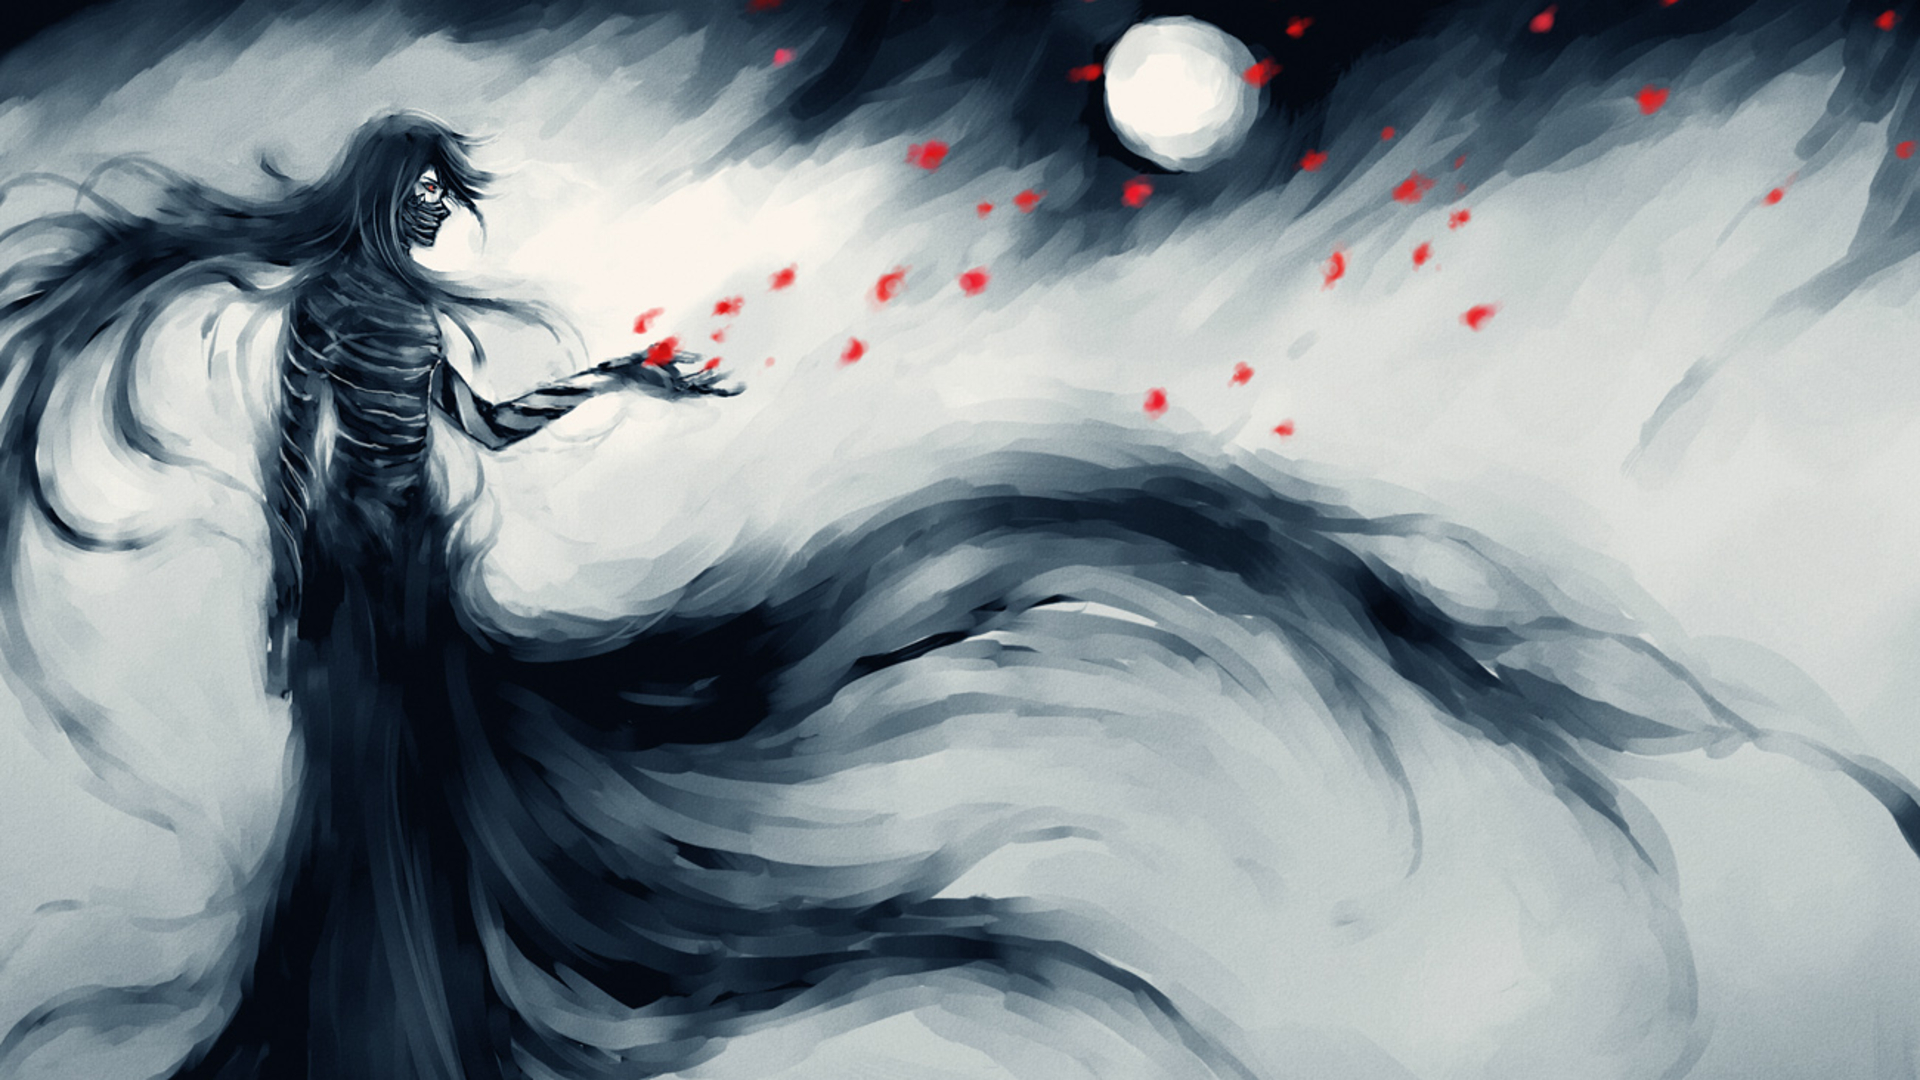 bleach wallpaper 1920 x 1080 -#main